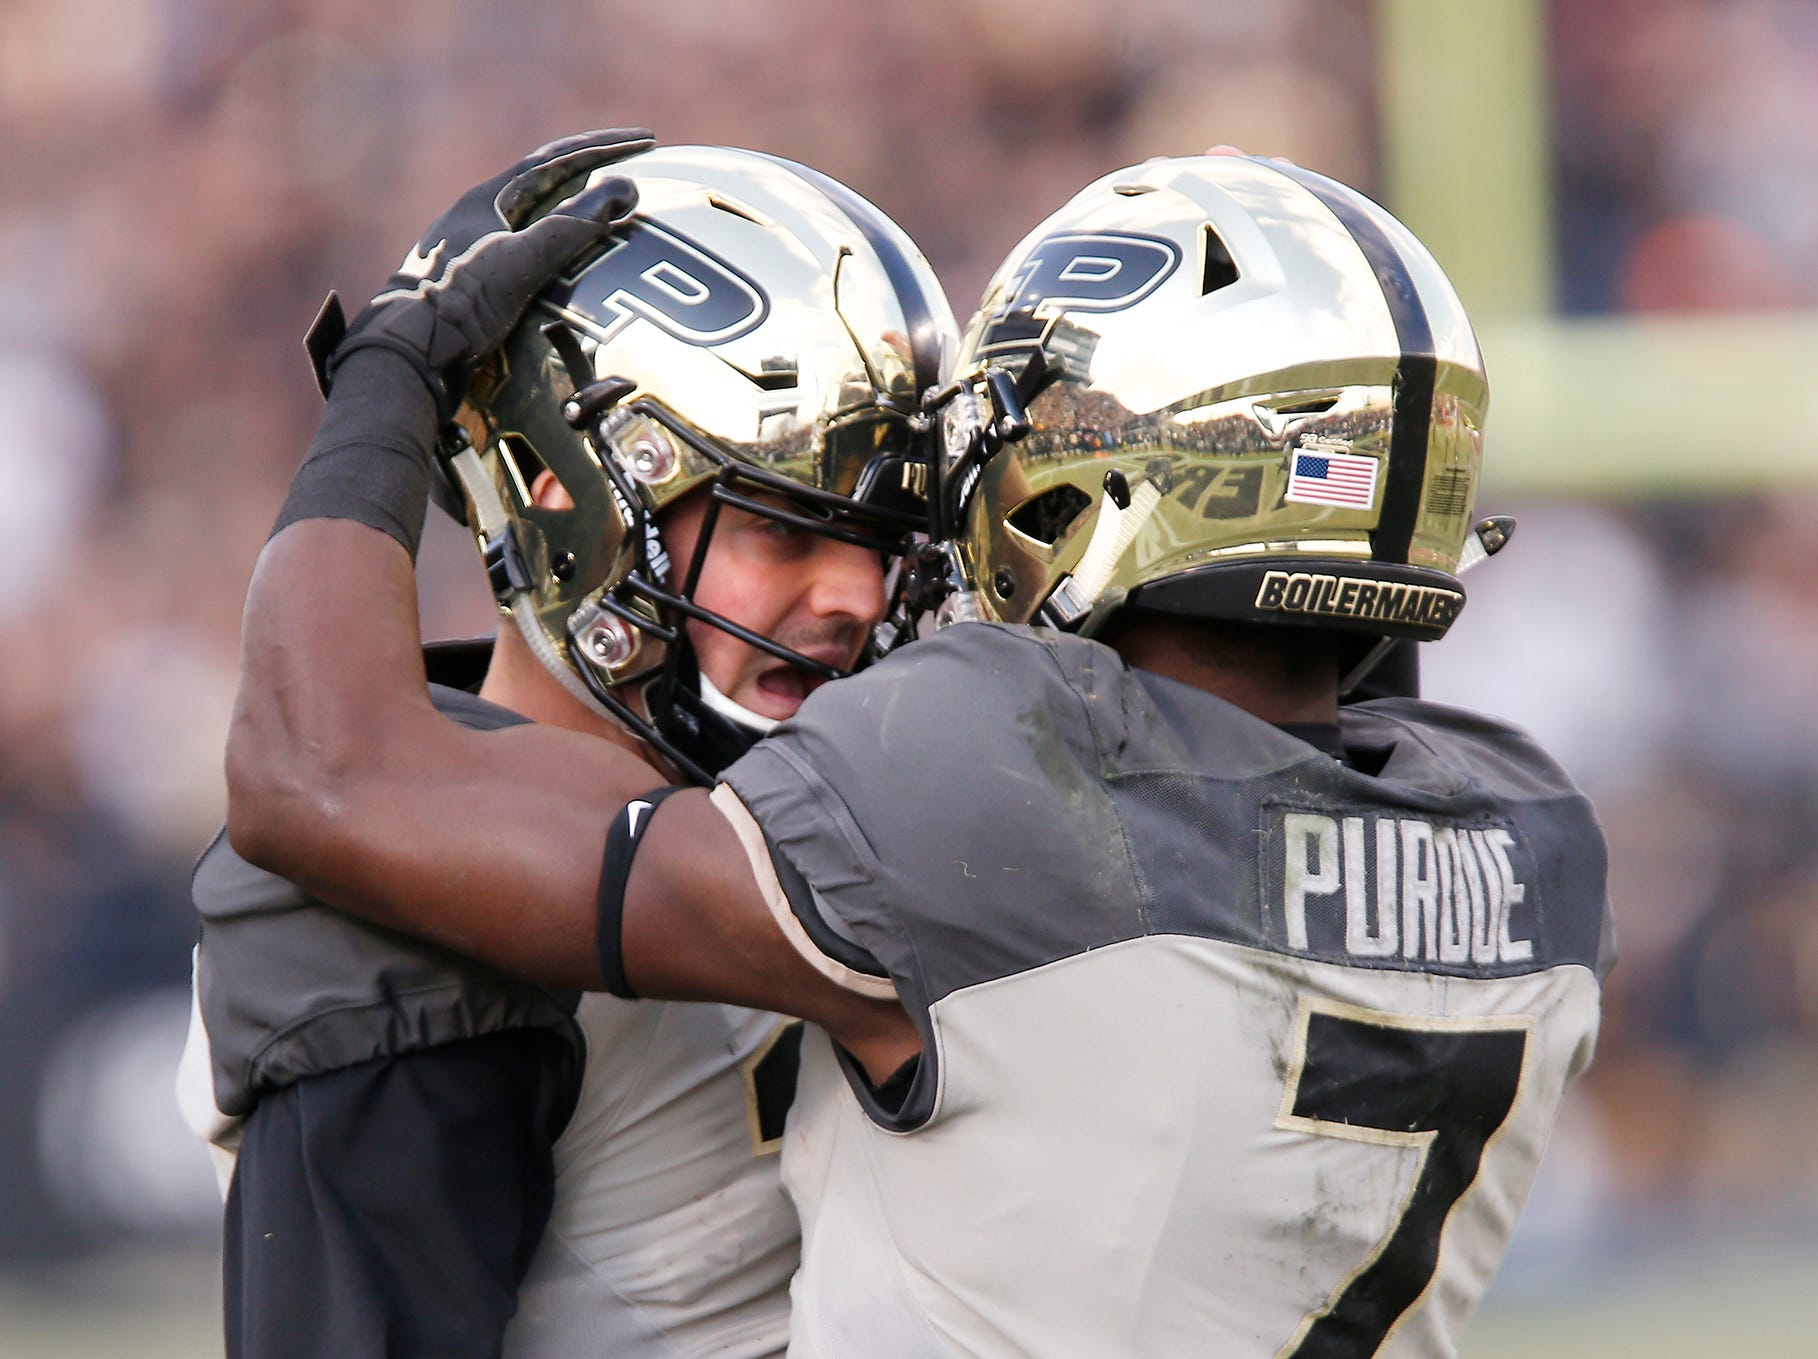 Purdue quarterback David Blough congratulates Isaac Zico after the pair connected for a touchdown at 11:56 in the first quarter against Iowa Saturday, November 3, 2018, at Ross-Ade Stadium. Purdue defeated Iowa 38-36.